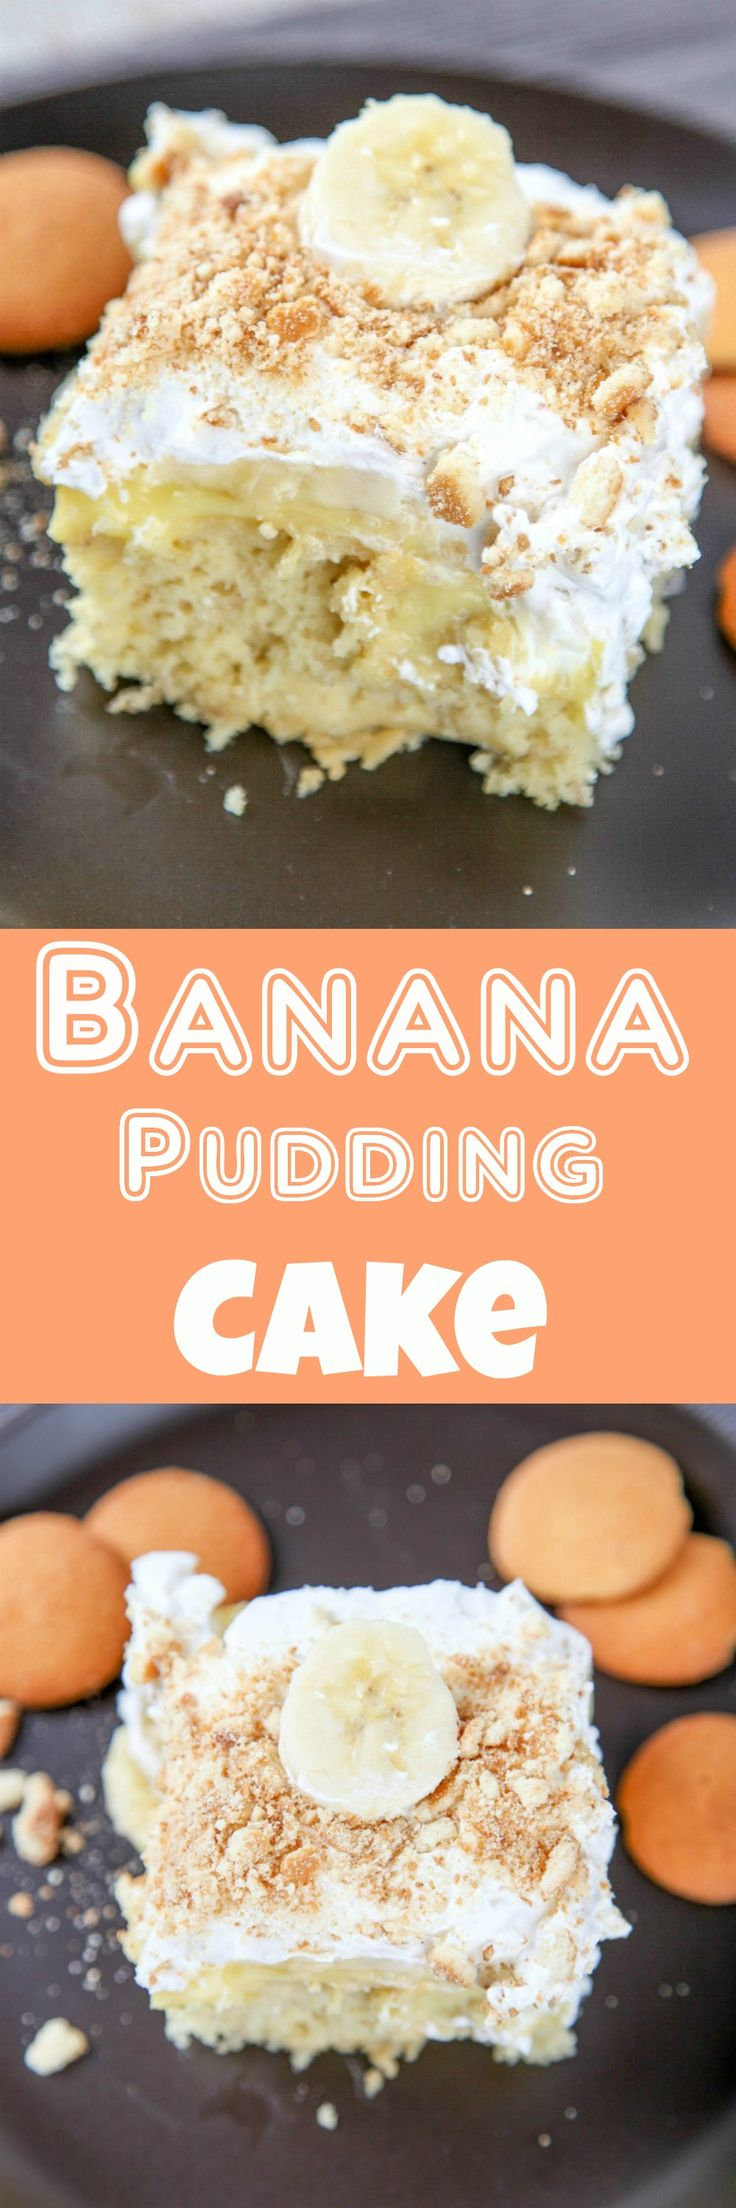 Banana Pudding Poke Cake: Moist banana cake topped with a generous amount of cream and vanilla wafers. All the flavors of banana pudding in an easy to bake cake!